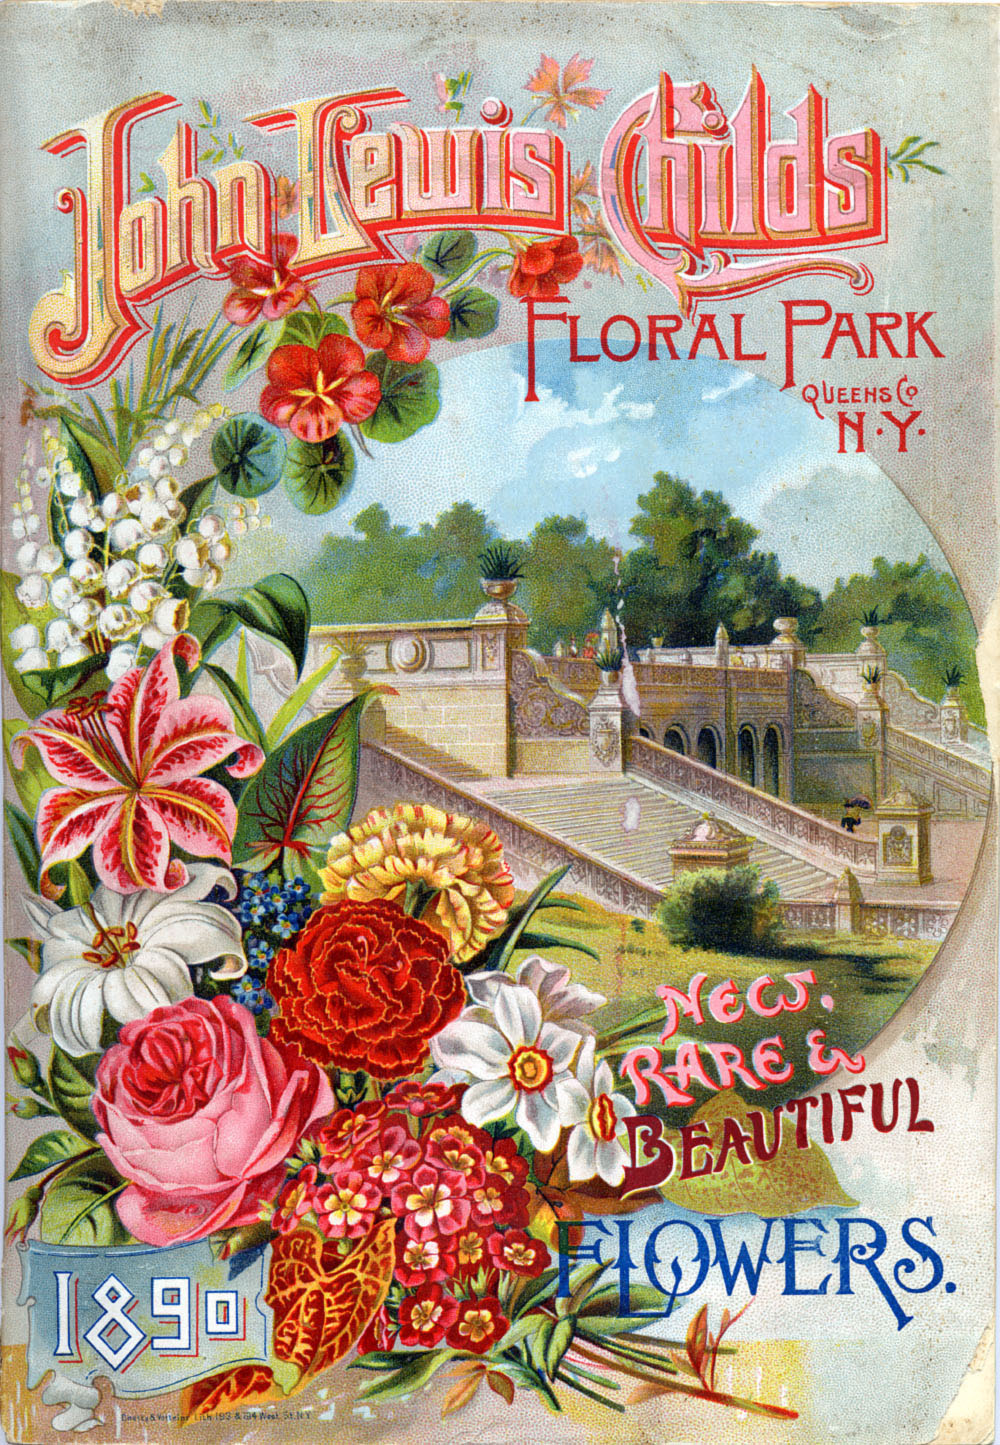 John Lewis Flowers Art artists vintage seed catalogues part 1 1890 new rare beautiful flowers john lewis childs floral park ny sisterspd